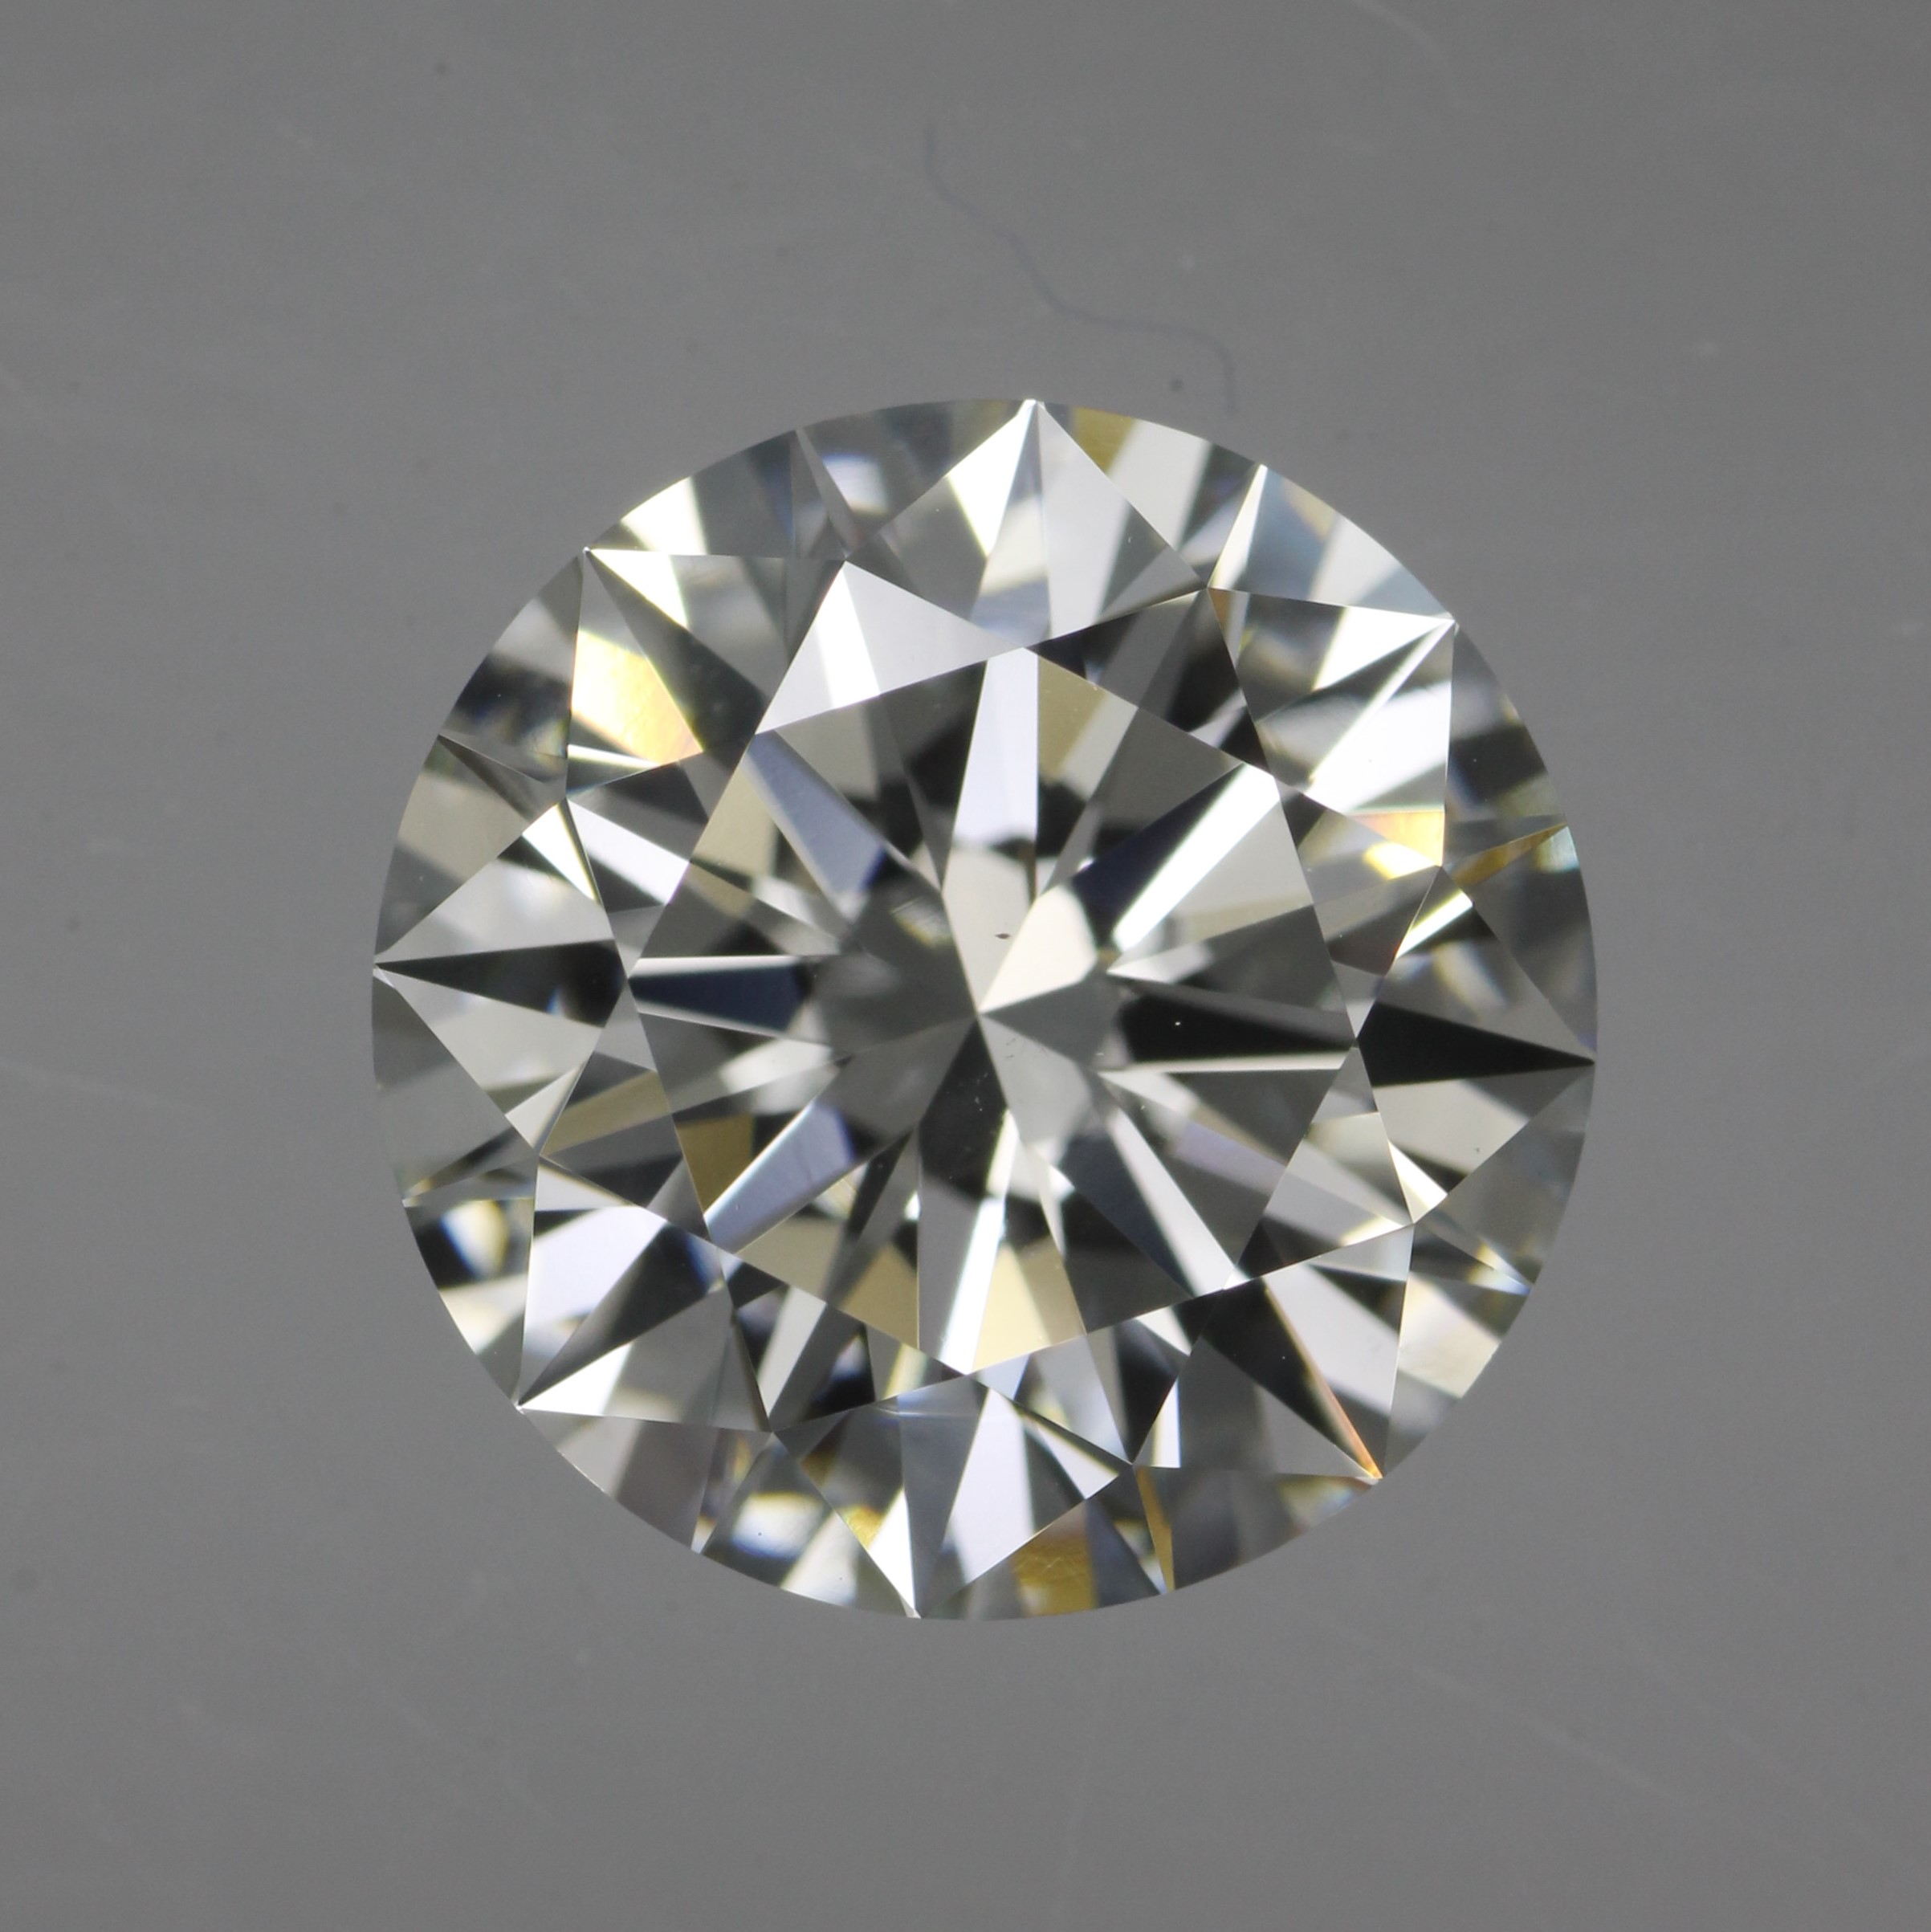 gia diamond brilliant ct original affinity real certified carat cut round fluorescence diamonds image h faint